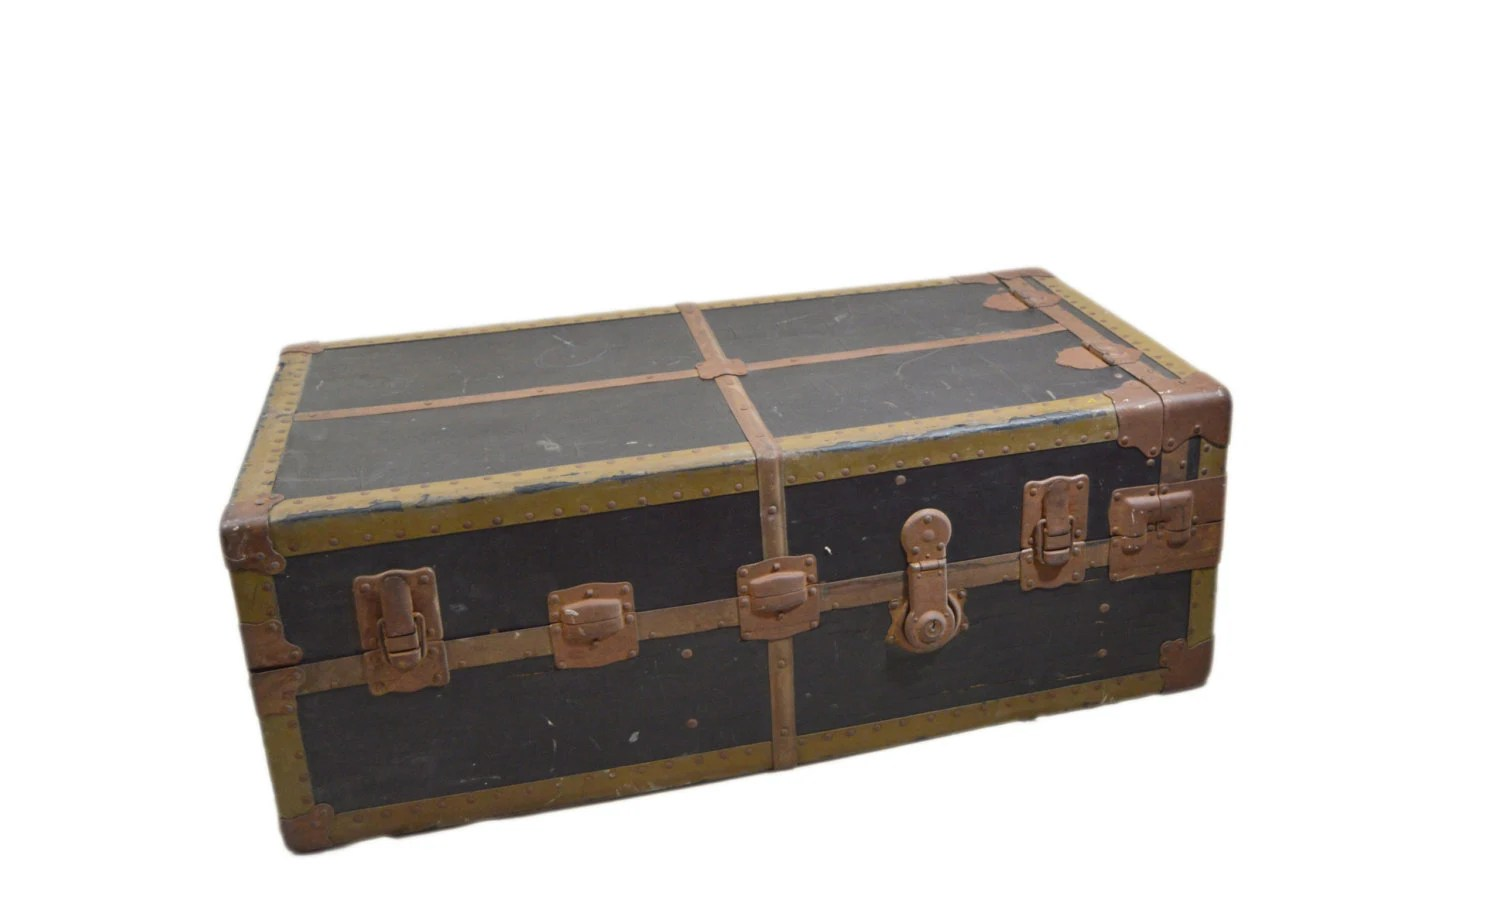 Vintage Steamer Trunk Coffee Table Trunk College Dorm Trunk Movie Prop Antique Large Steamer